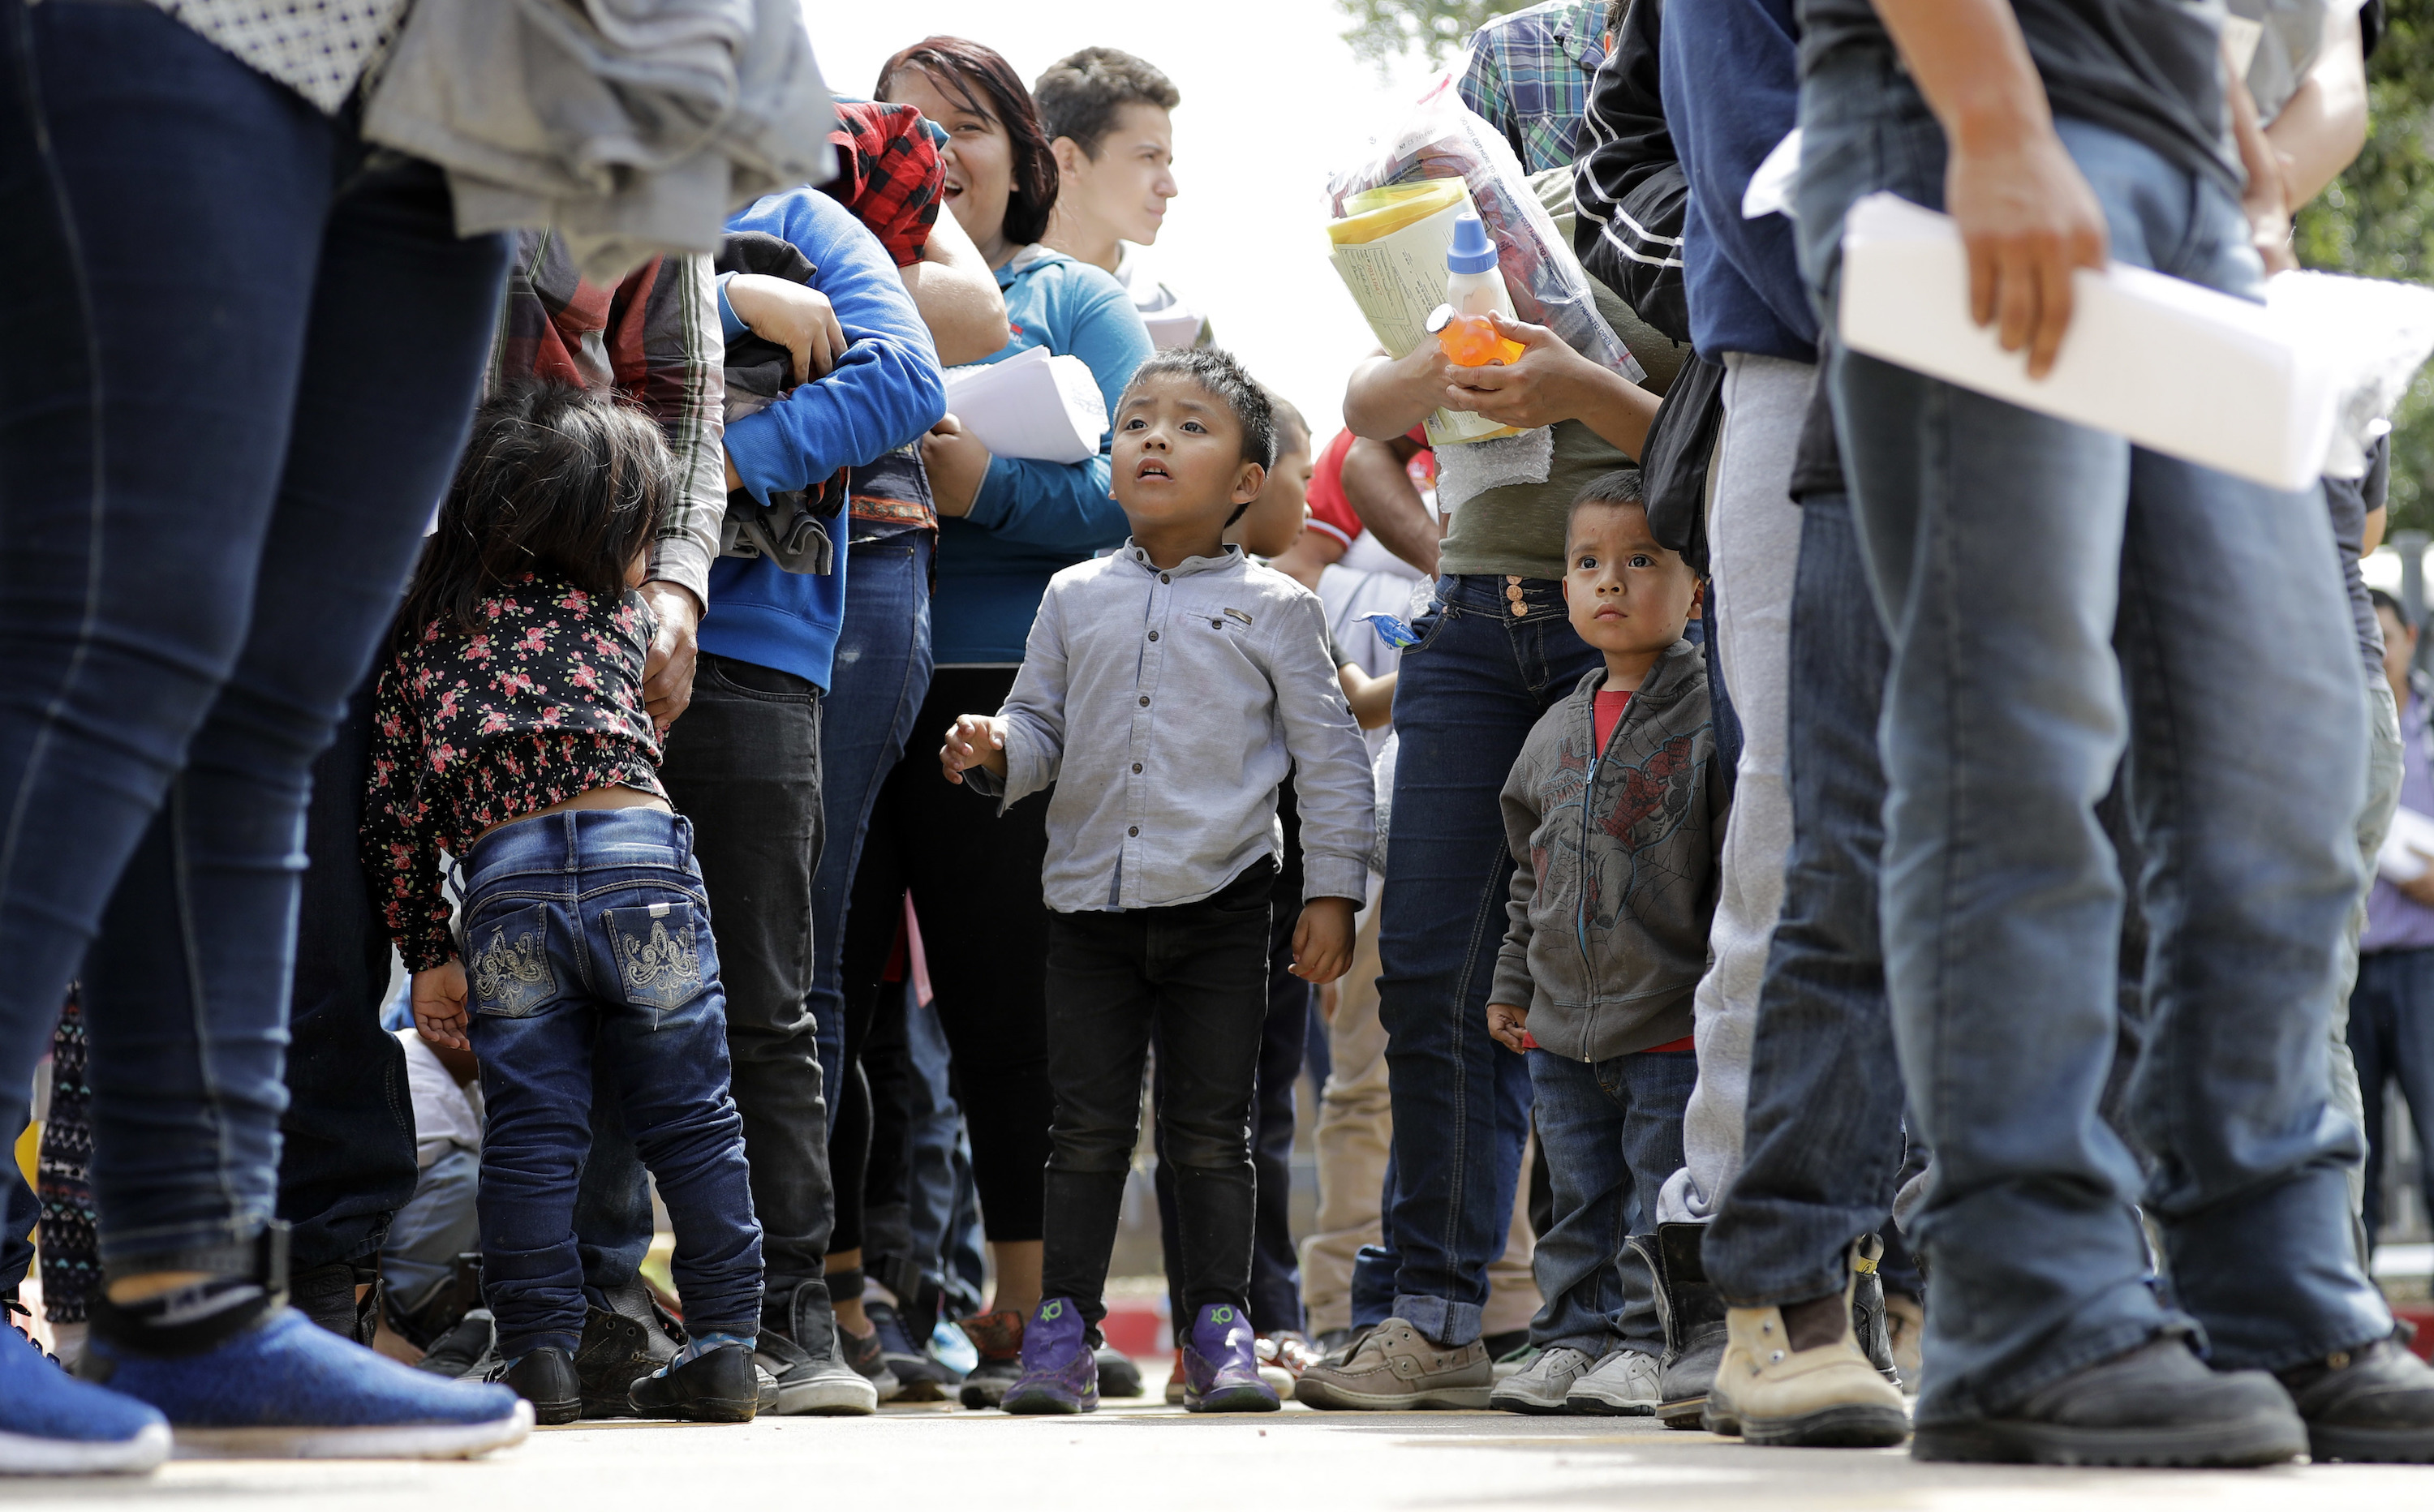 Photo: Immigration Families At The Border